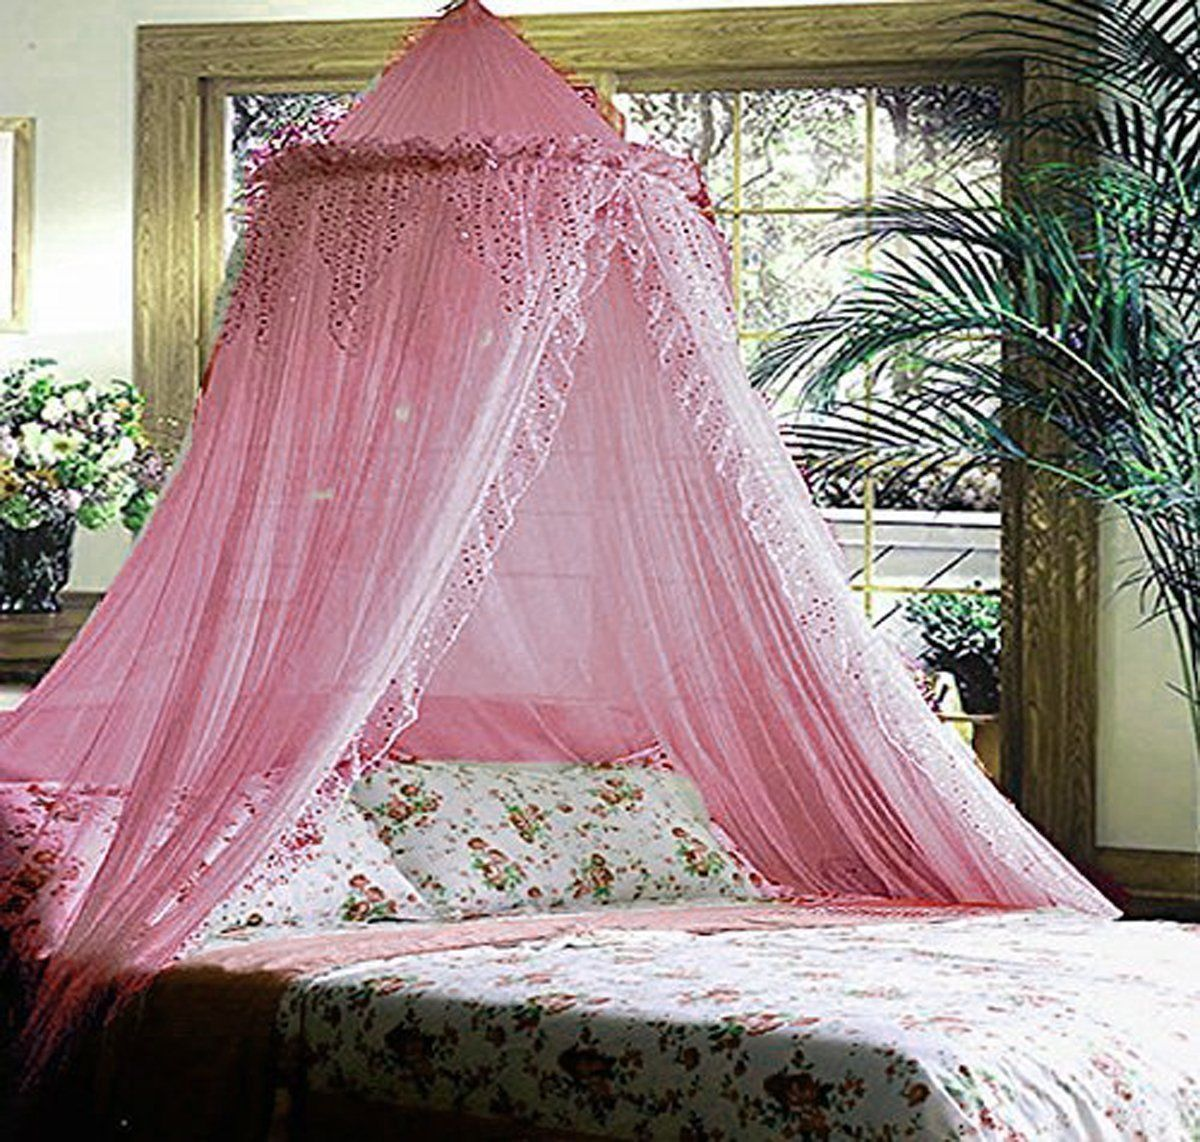 Mosquito Net Bed Canopy Lace Luxury 4 Corner Square Princess Fly